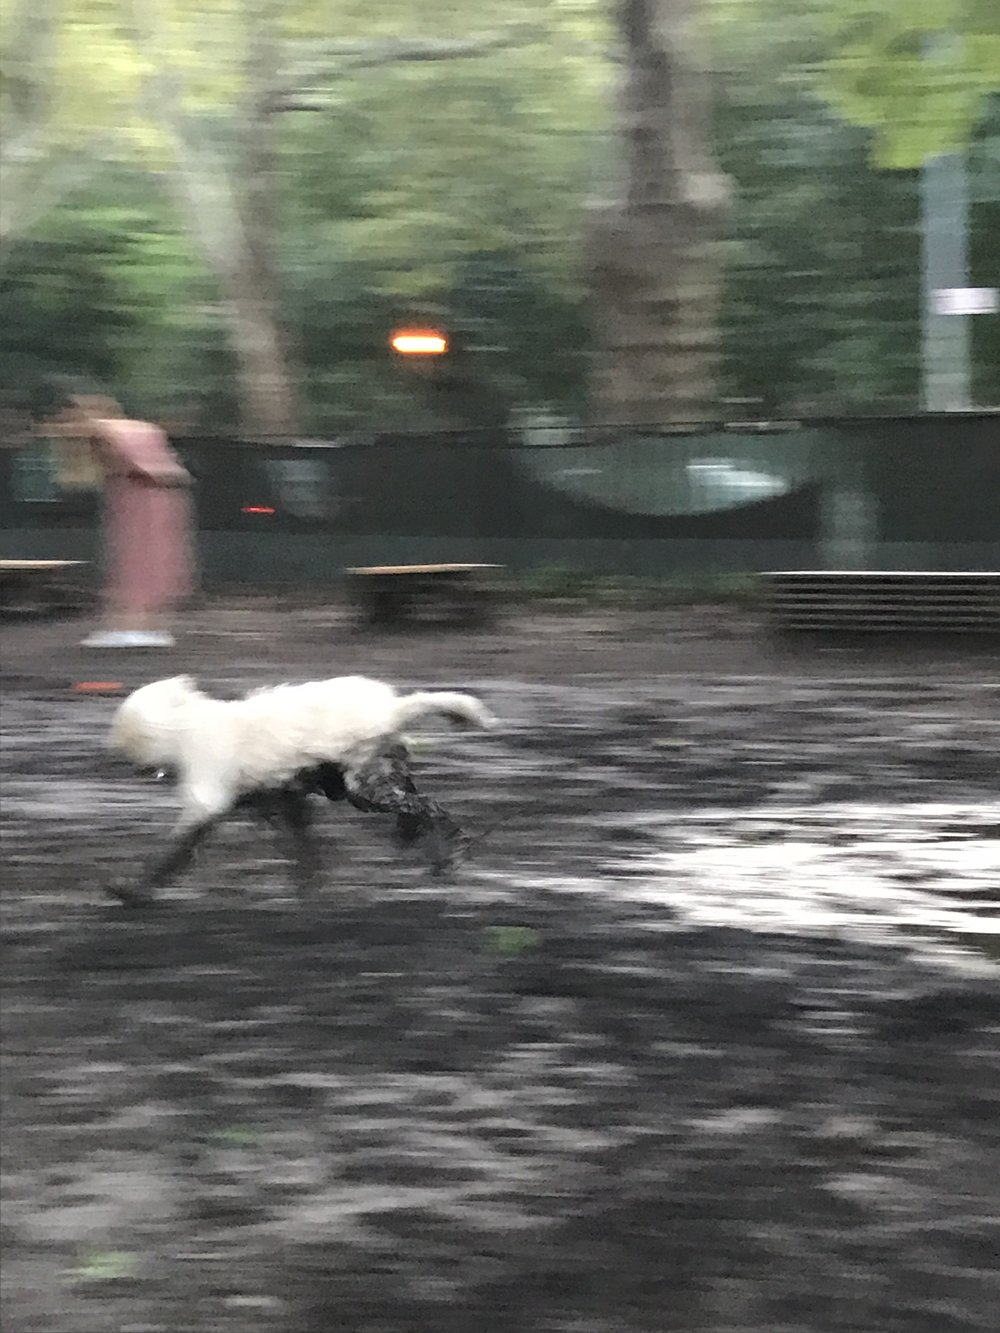 A majestic dog I witnessed at the dog park in McCarren Park!!! He rolled around in the mud and seemed so happy :') Even though he was dirty and messy the owner didn't care and I remember clearly thinking that this dog represented me very well haha -